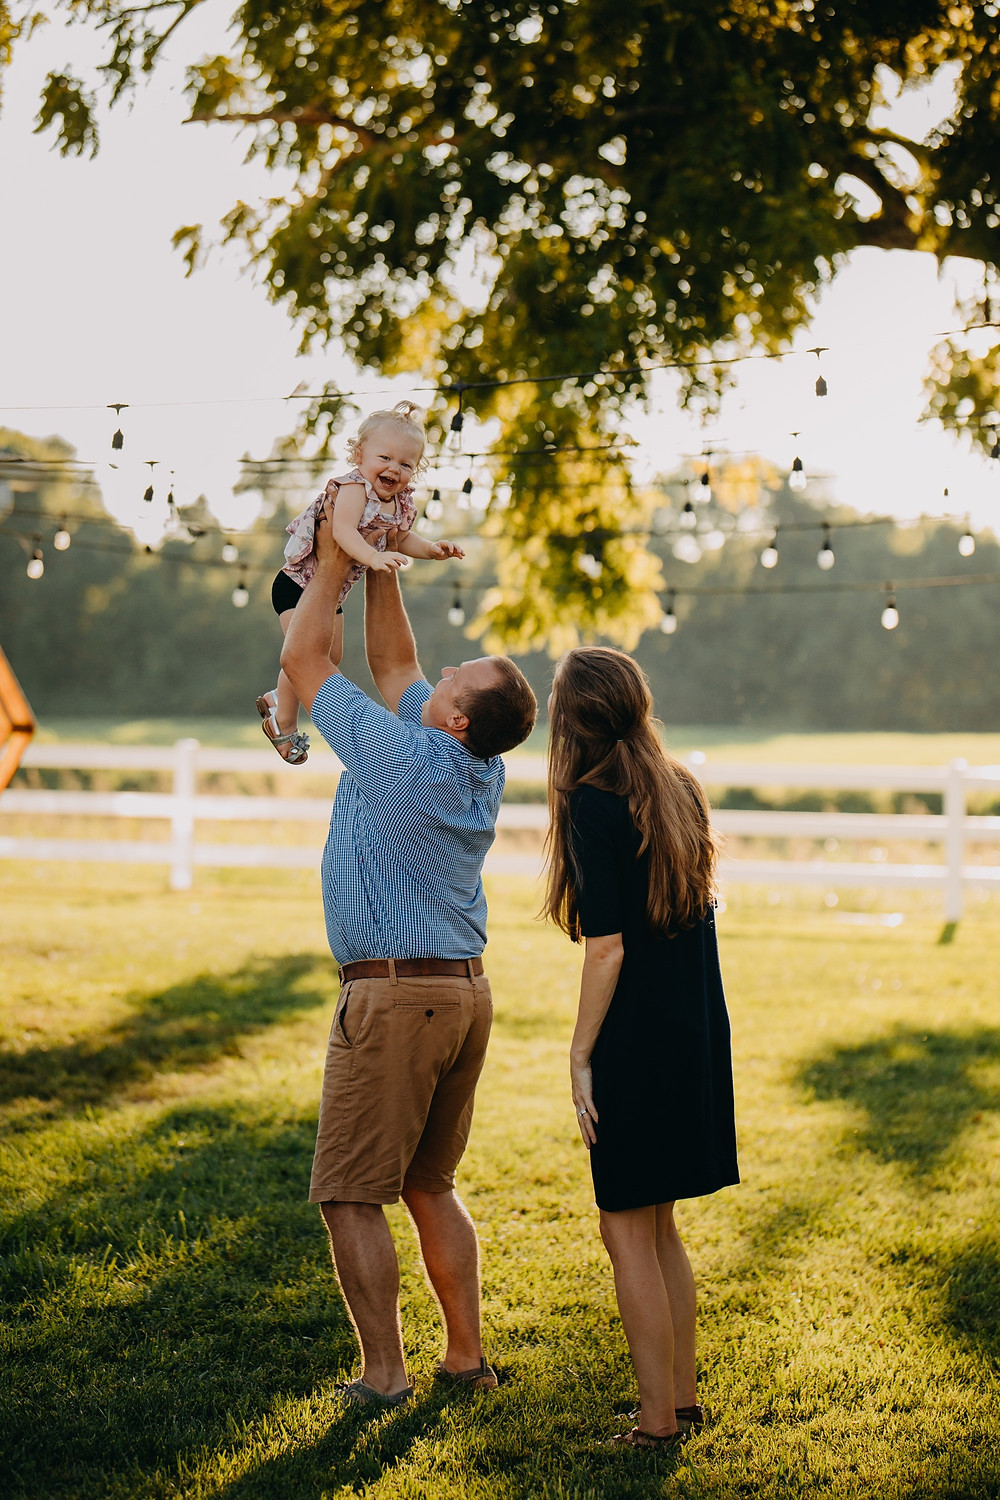 Dad playfully tossing baby daughter in air during Family session in Knoxville and Gatlinburg, TN during golden hour